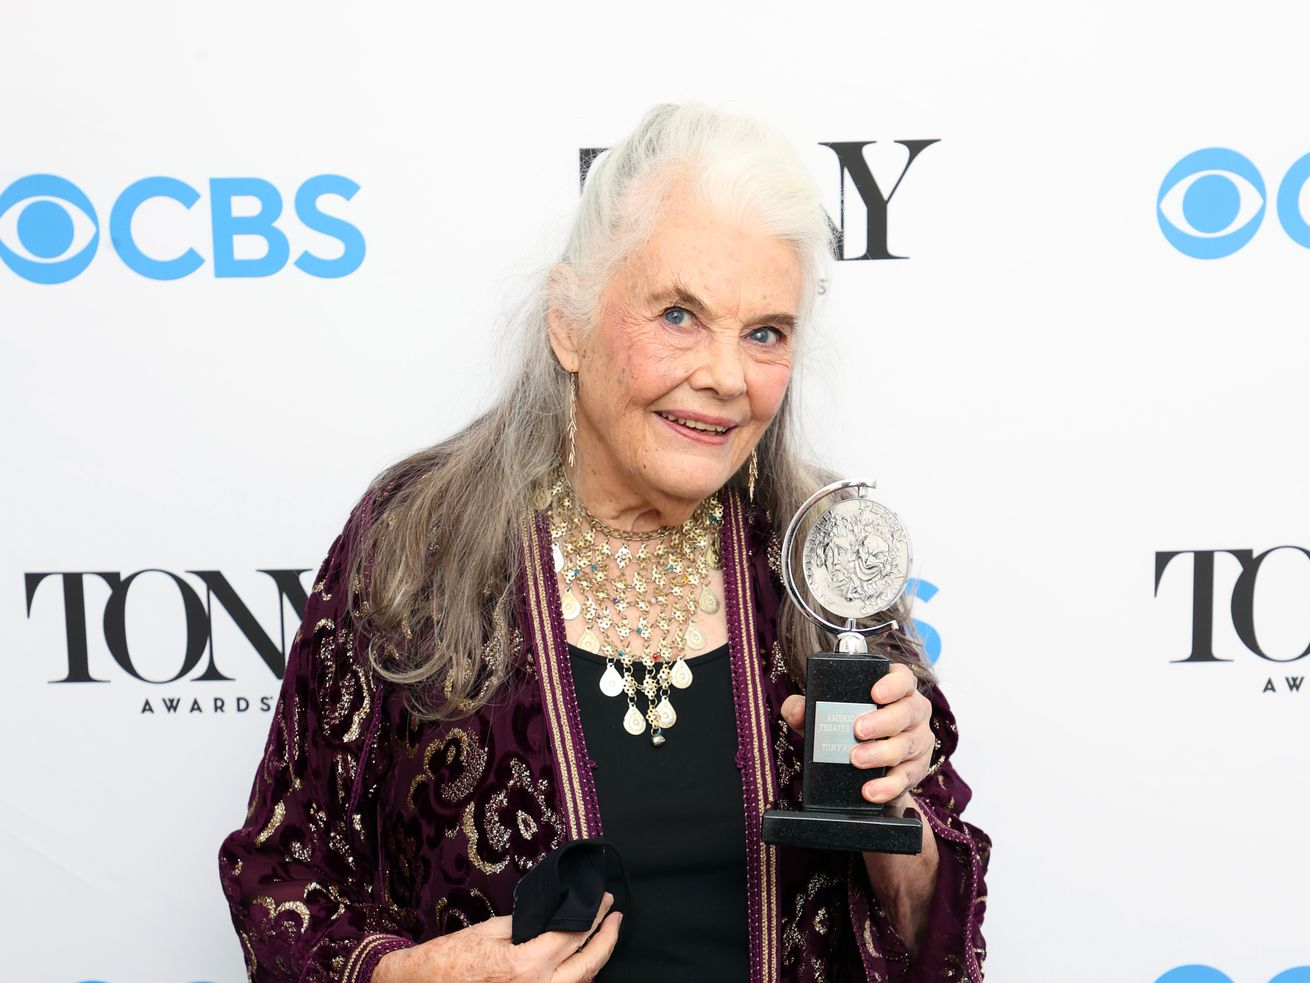 Steppenwolf's Lois Smith wins her first Tony Award